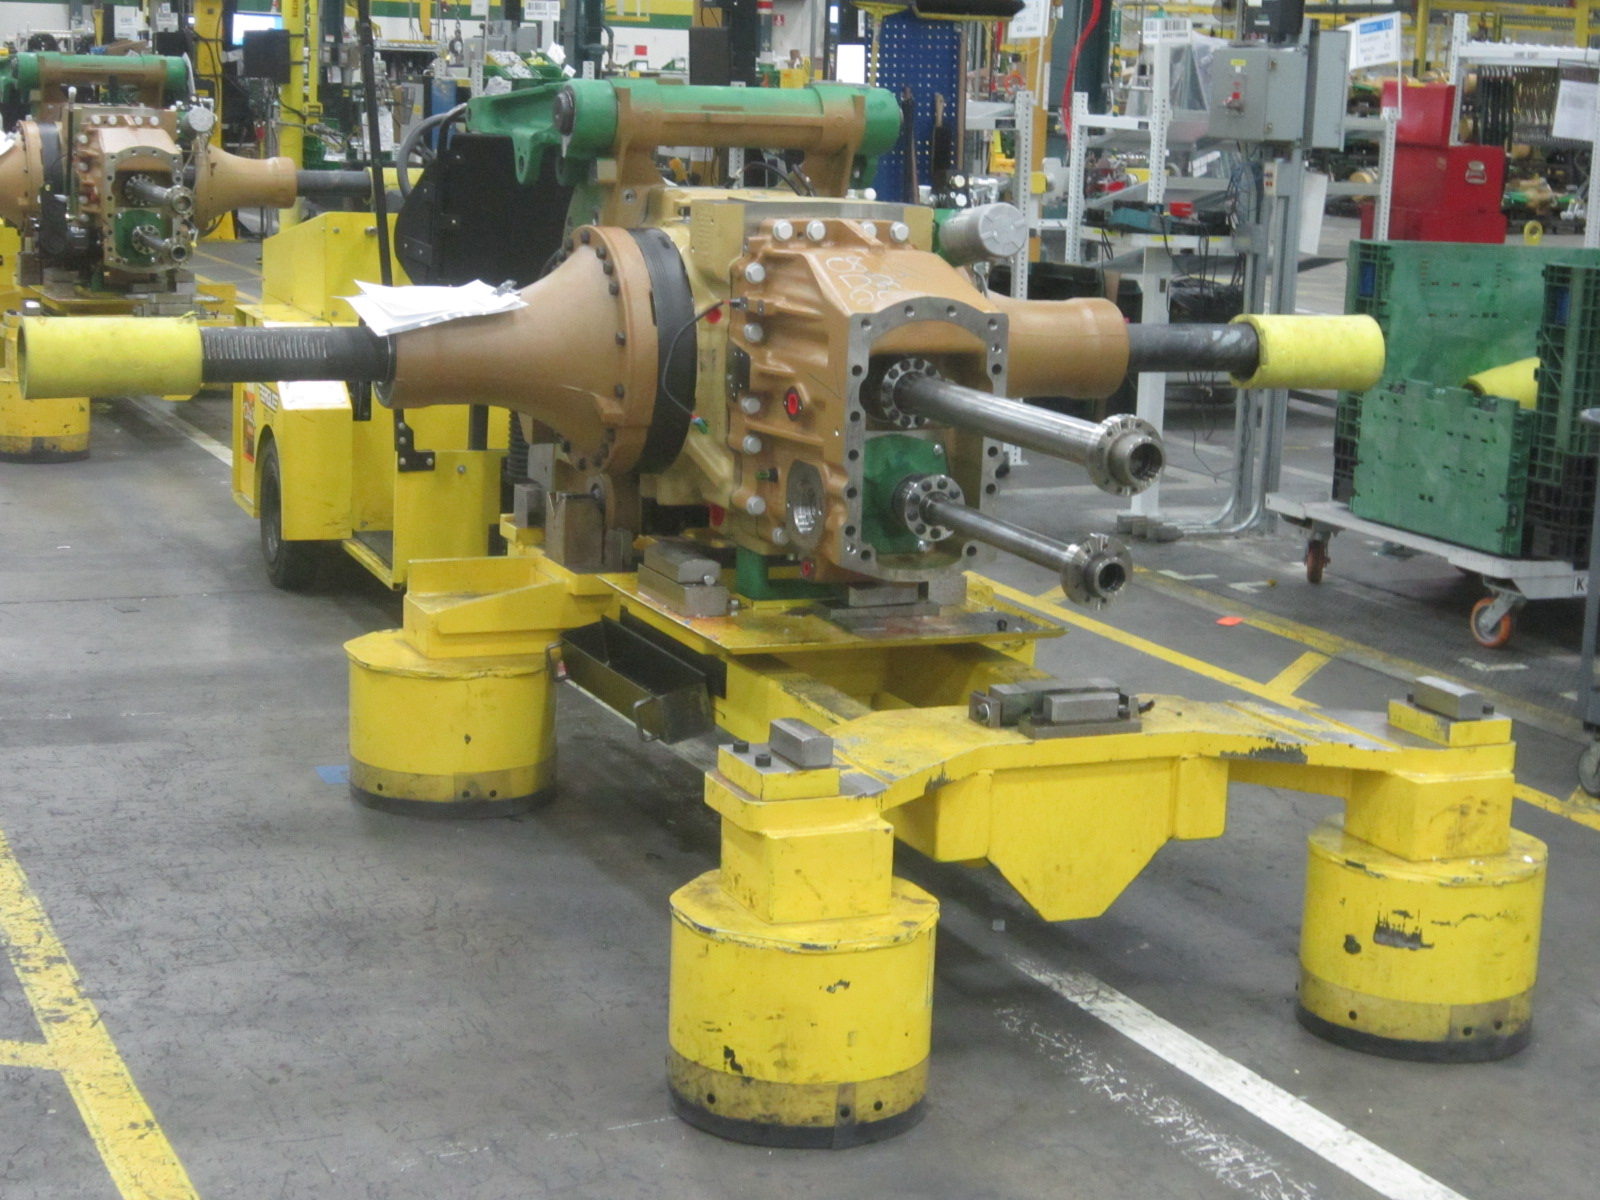 Tractor Chasis Being Built.JPG